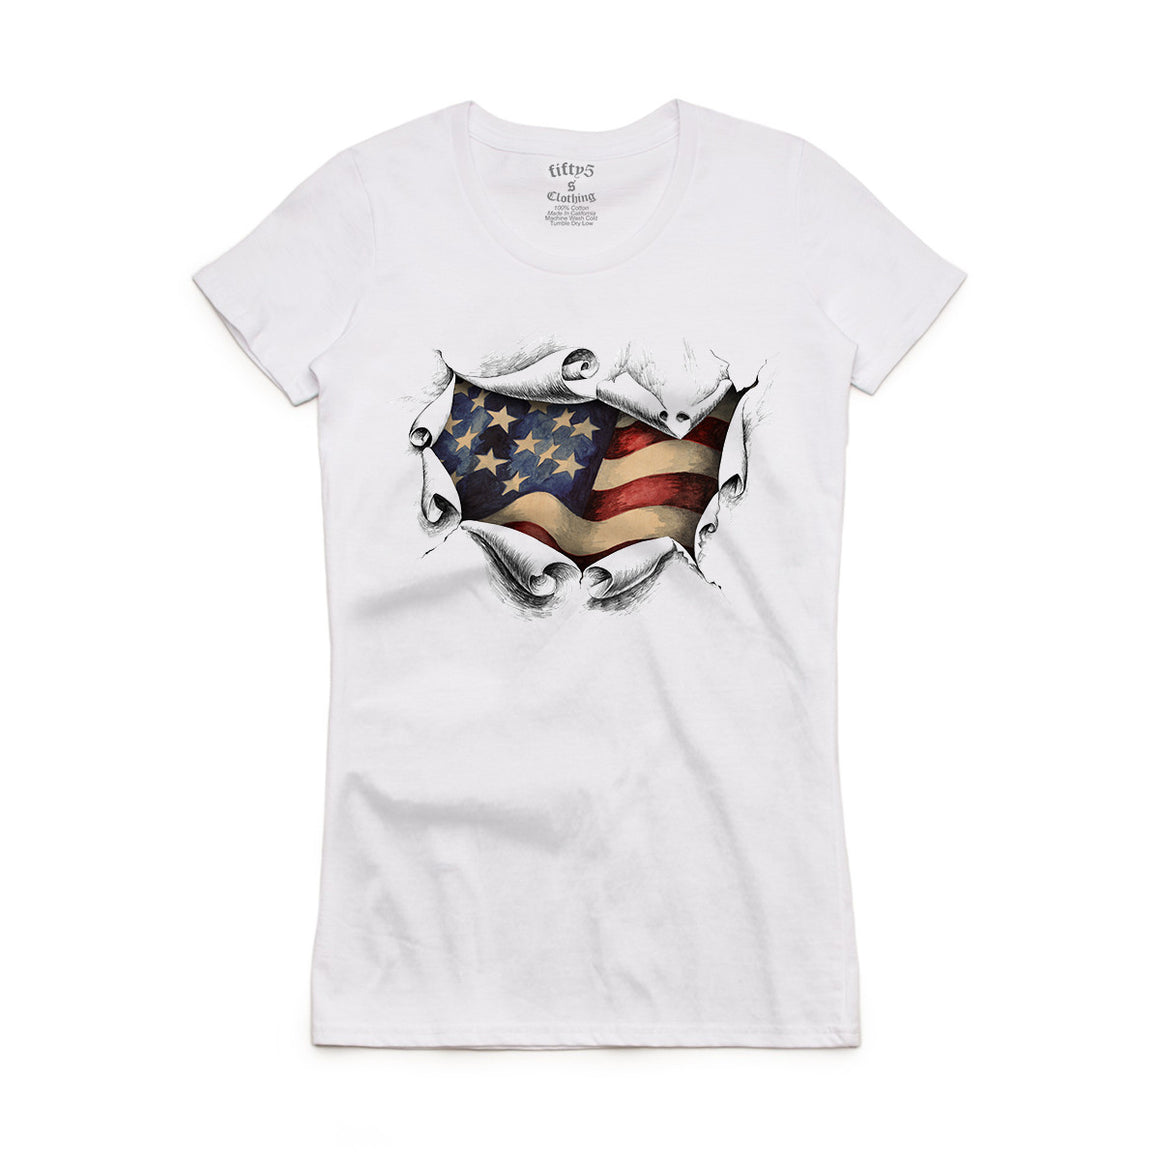 Fifty5 Clothing American Women's Crew Neck T-Shirt